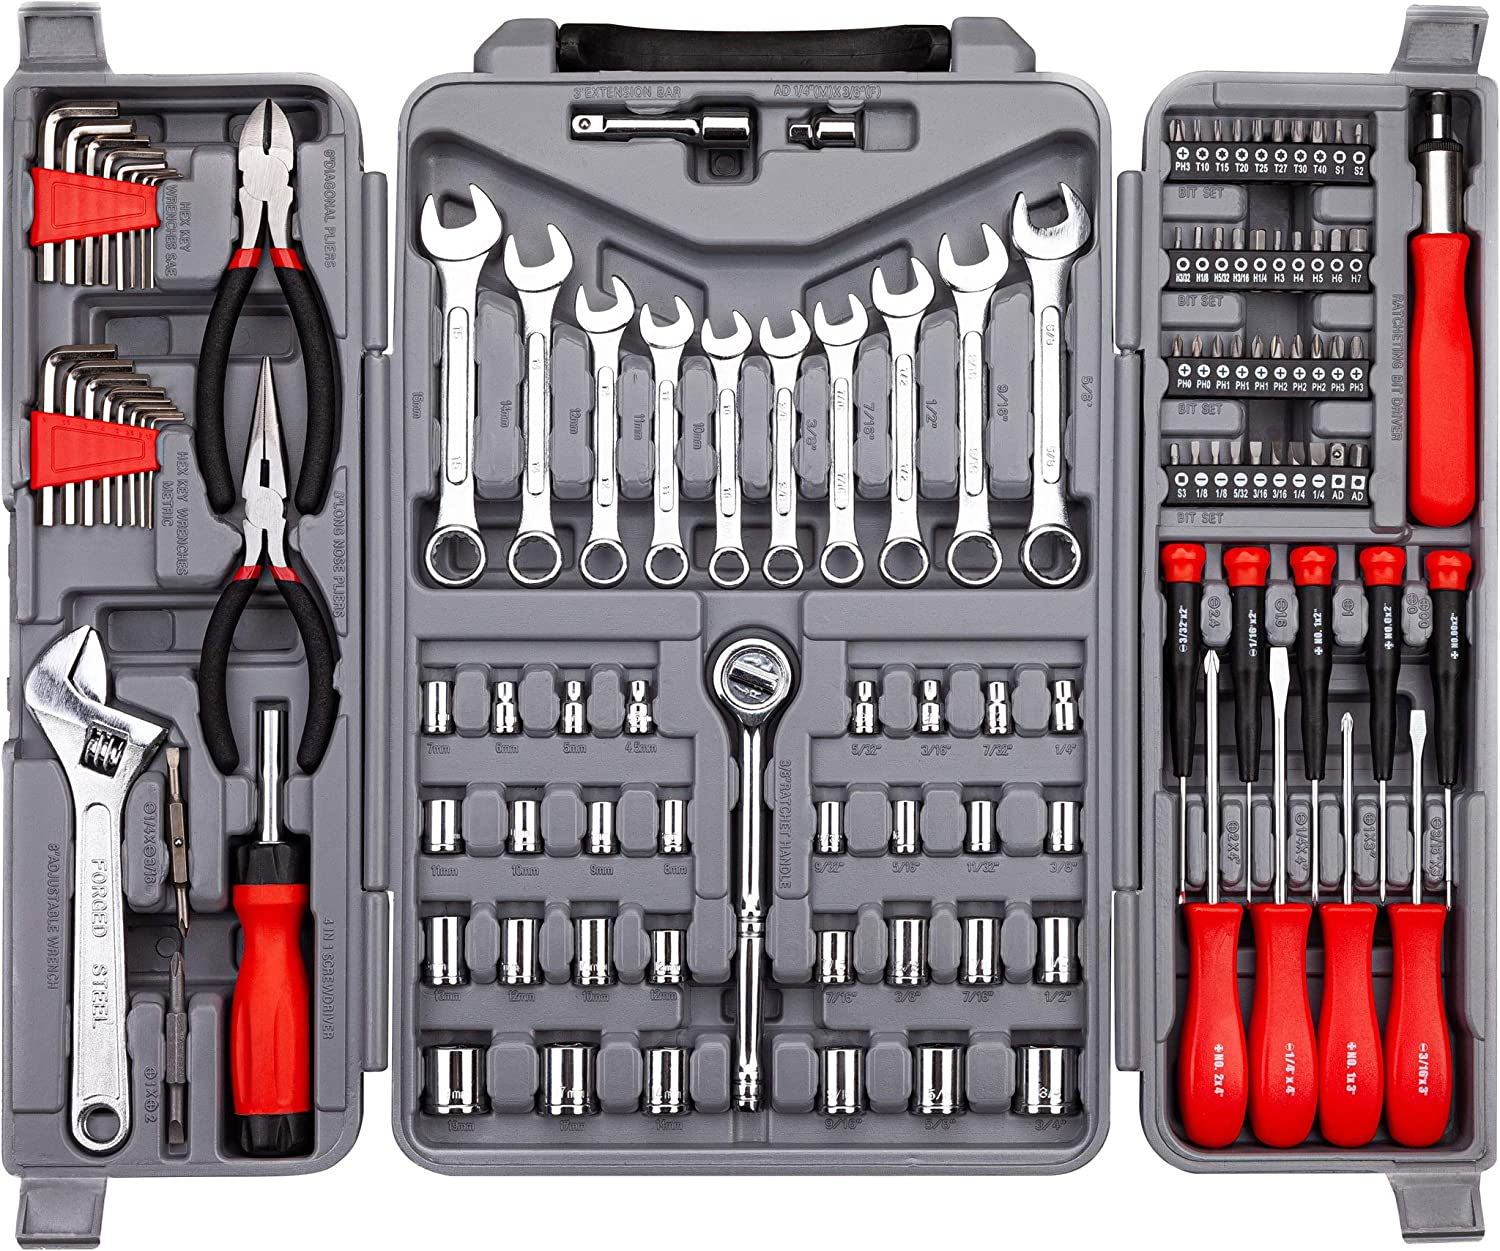 CARTMAN 123-Piece Tool Set - General Household Hand Tool Kit with Plastic Toolbox Storage Case